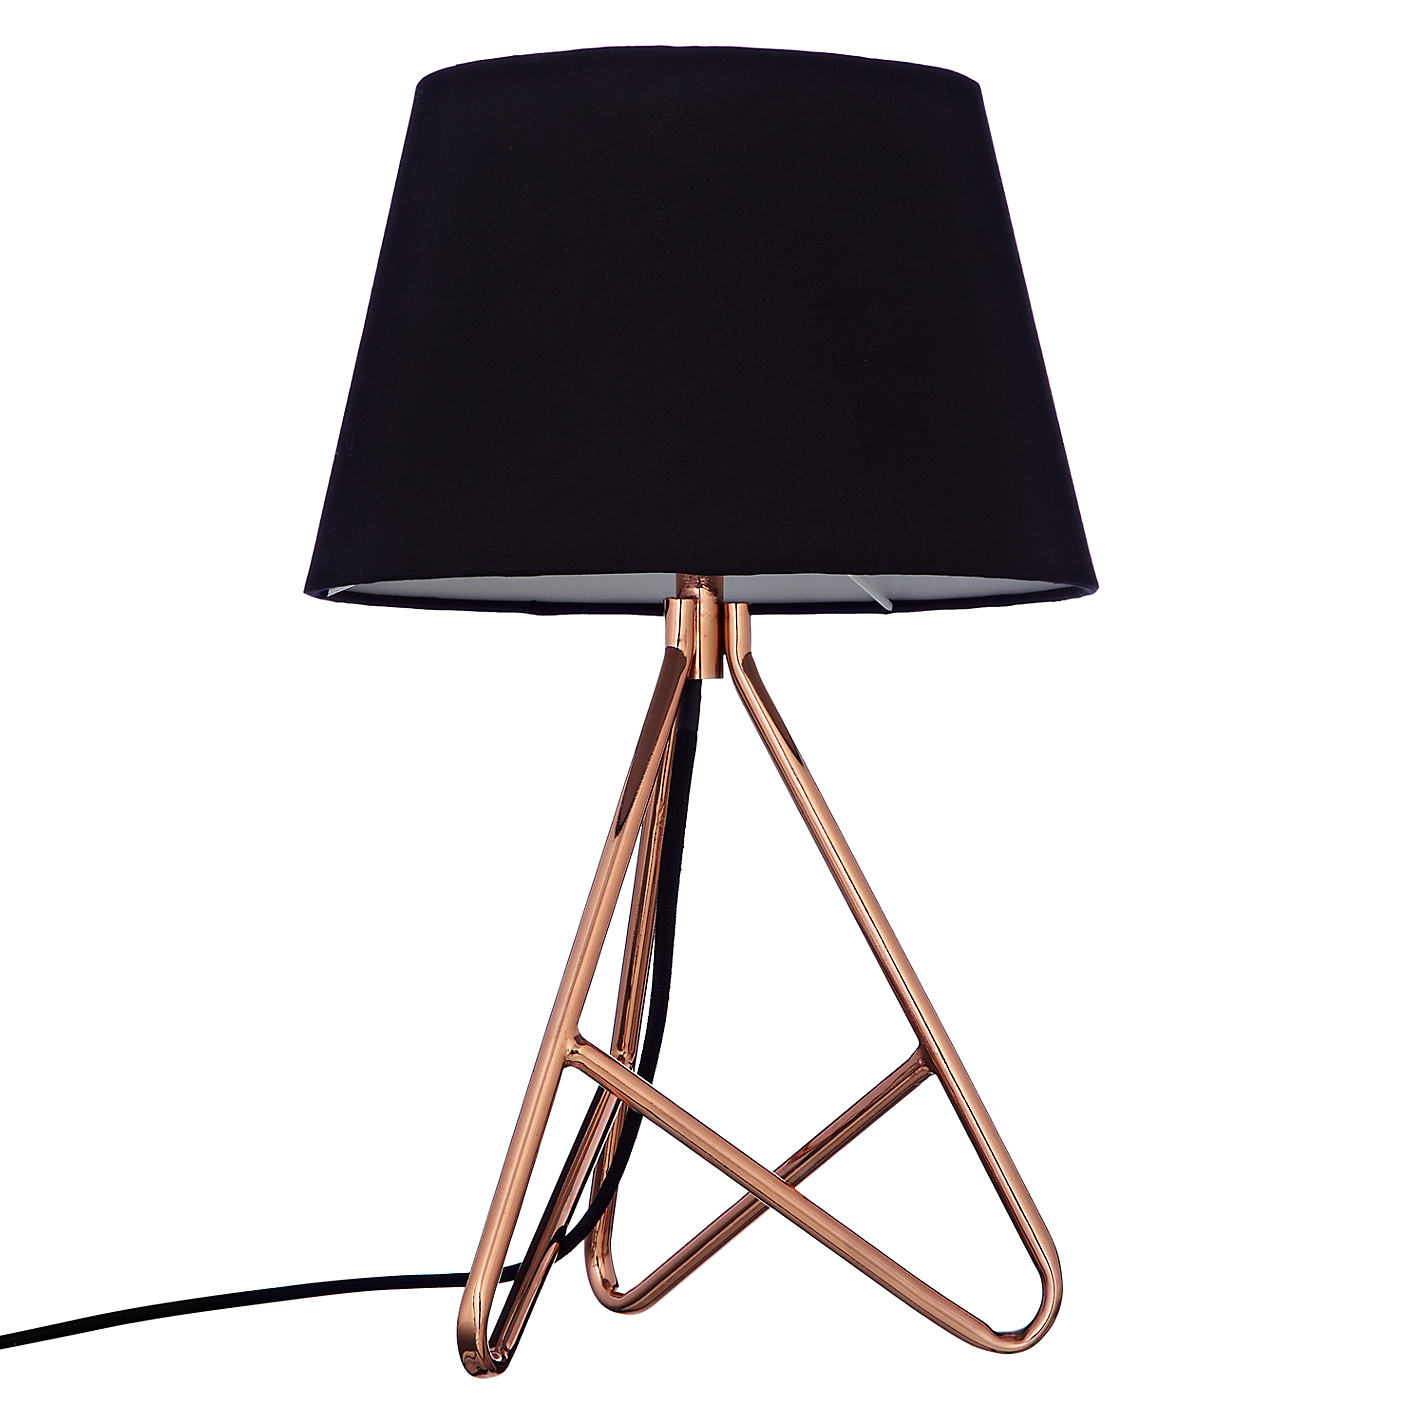 Buy john lewis albus twisted table lamp john lewis buy john lewis albus twisted table lamp online at johnlewis mozeypictures Gallery